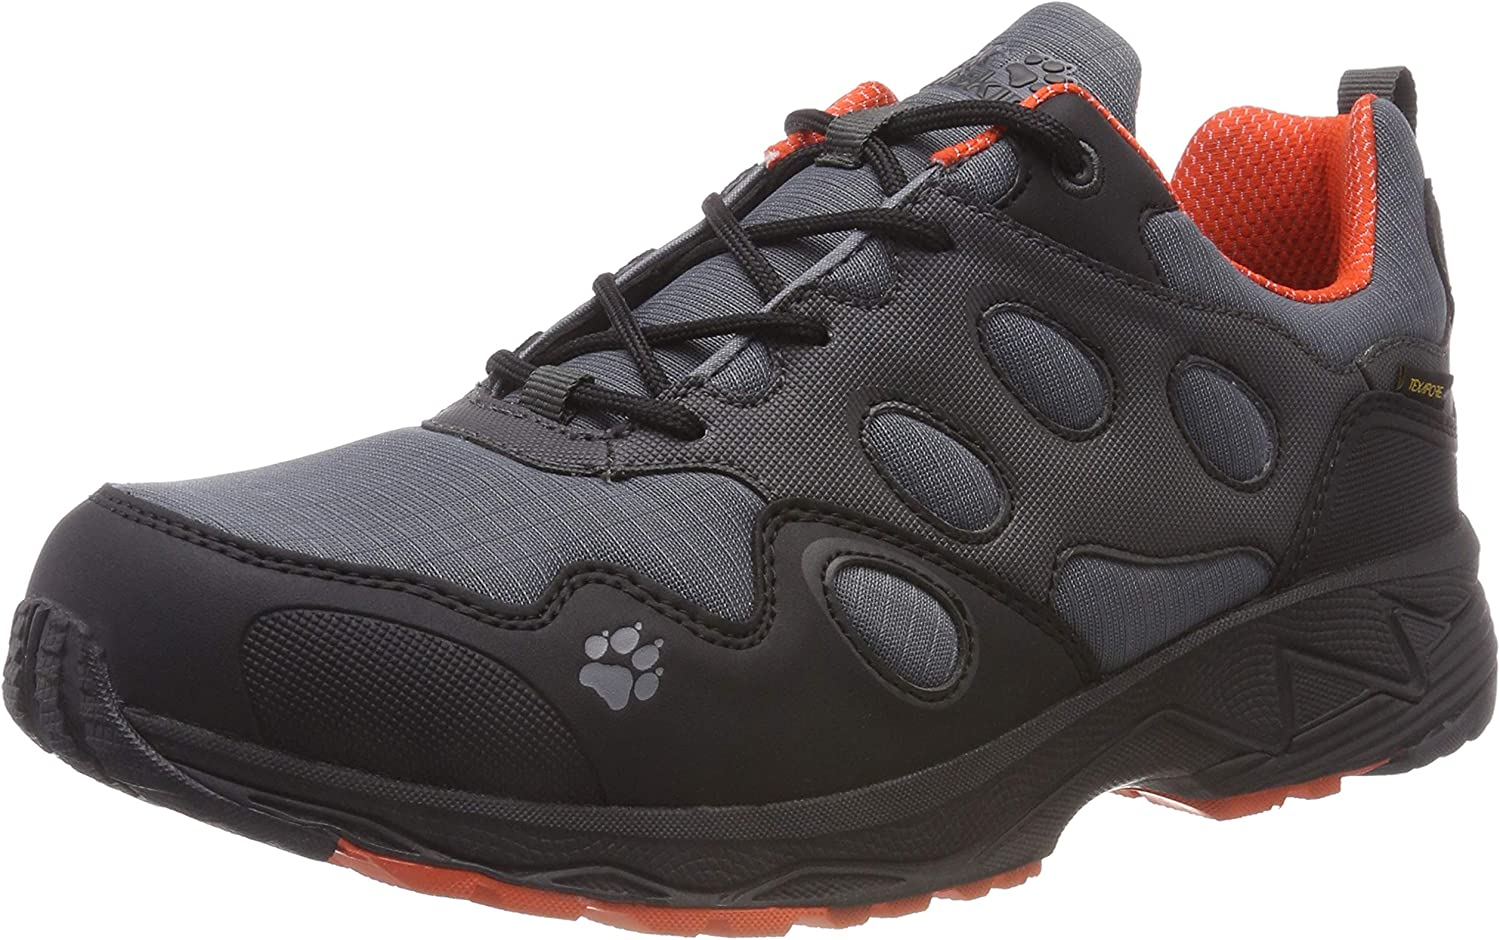 Jack Wolfskin Men's Venture Fly Texapore Low M Rise Hiking shoes